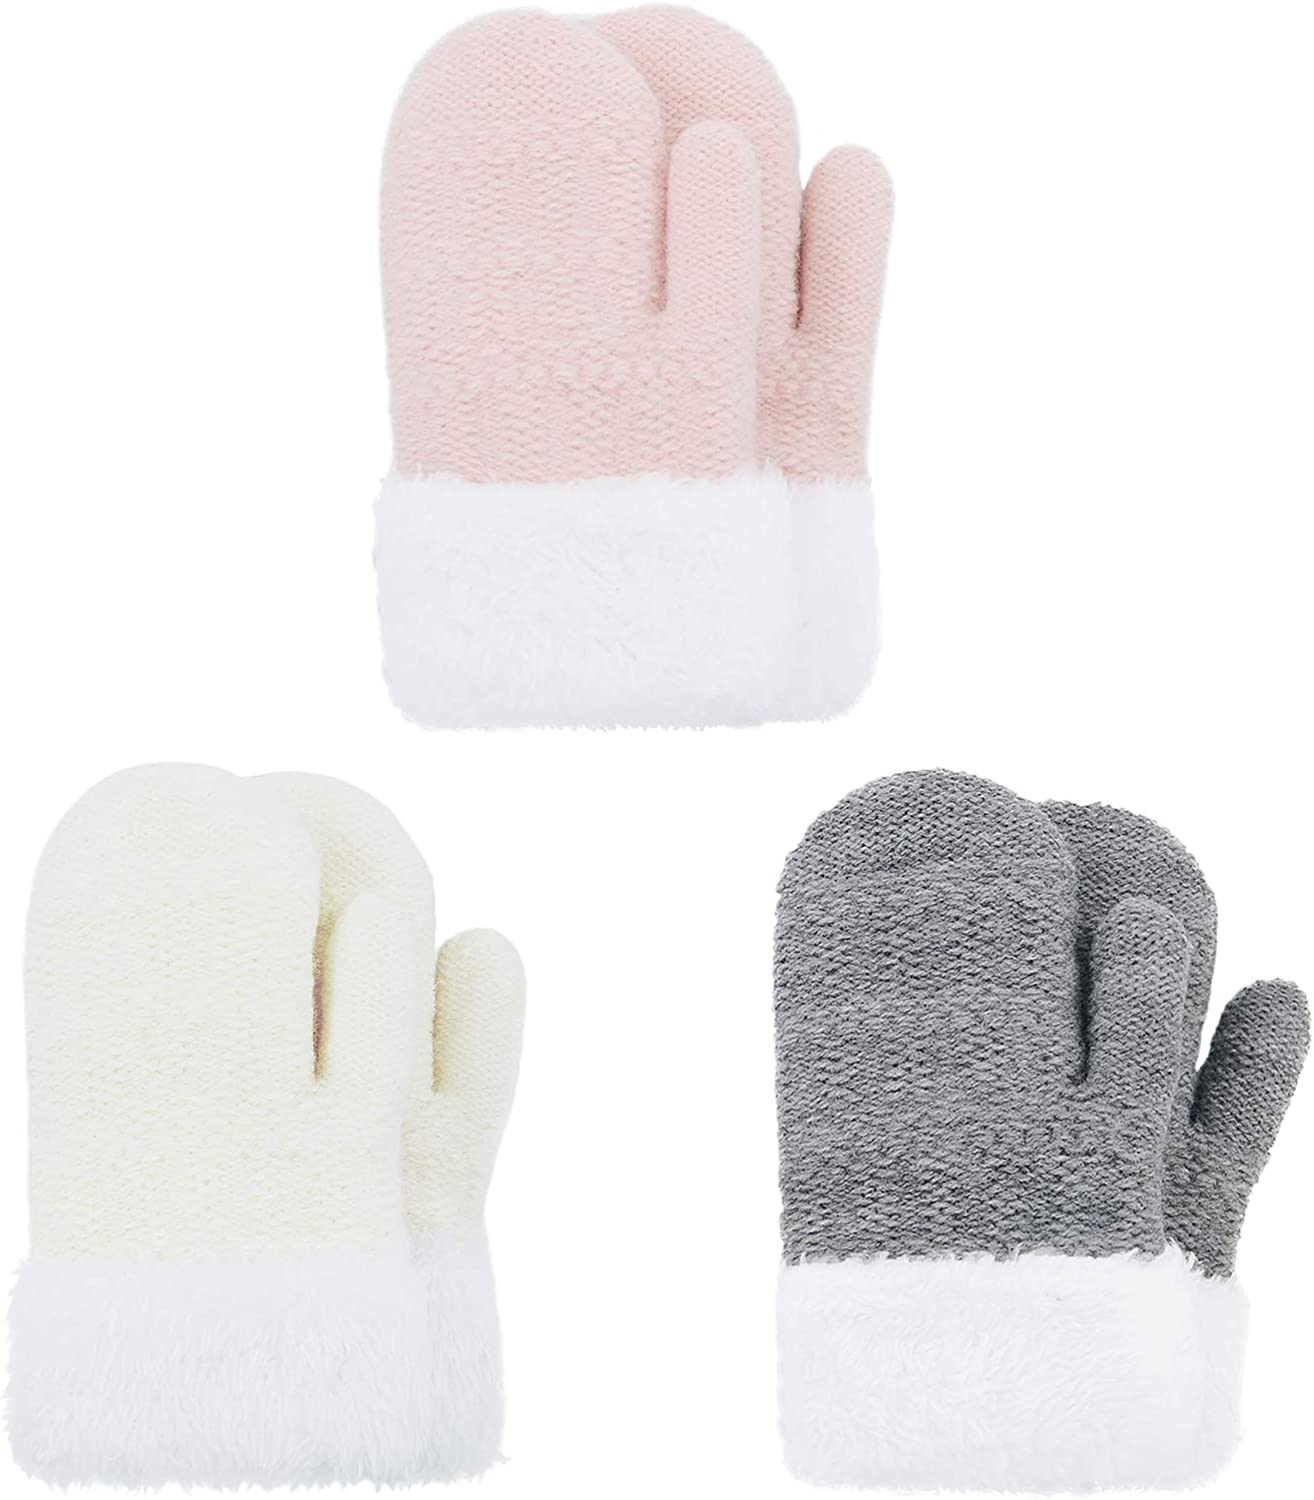 Kids Winter Toddler Mittens Multicolor Soft Knitted Gloves Thick Cold Protection Mitten